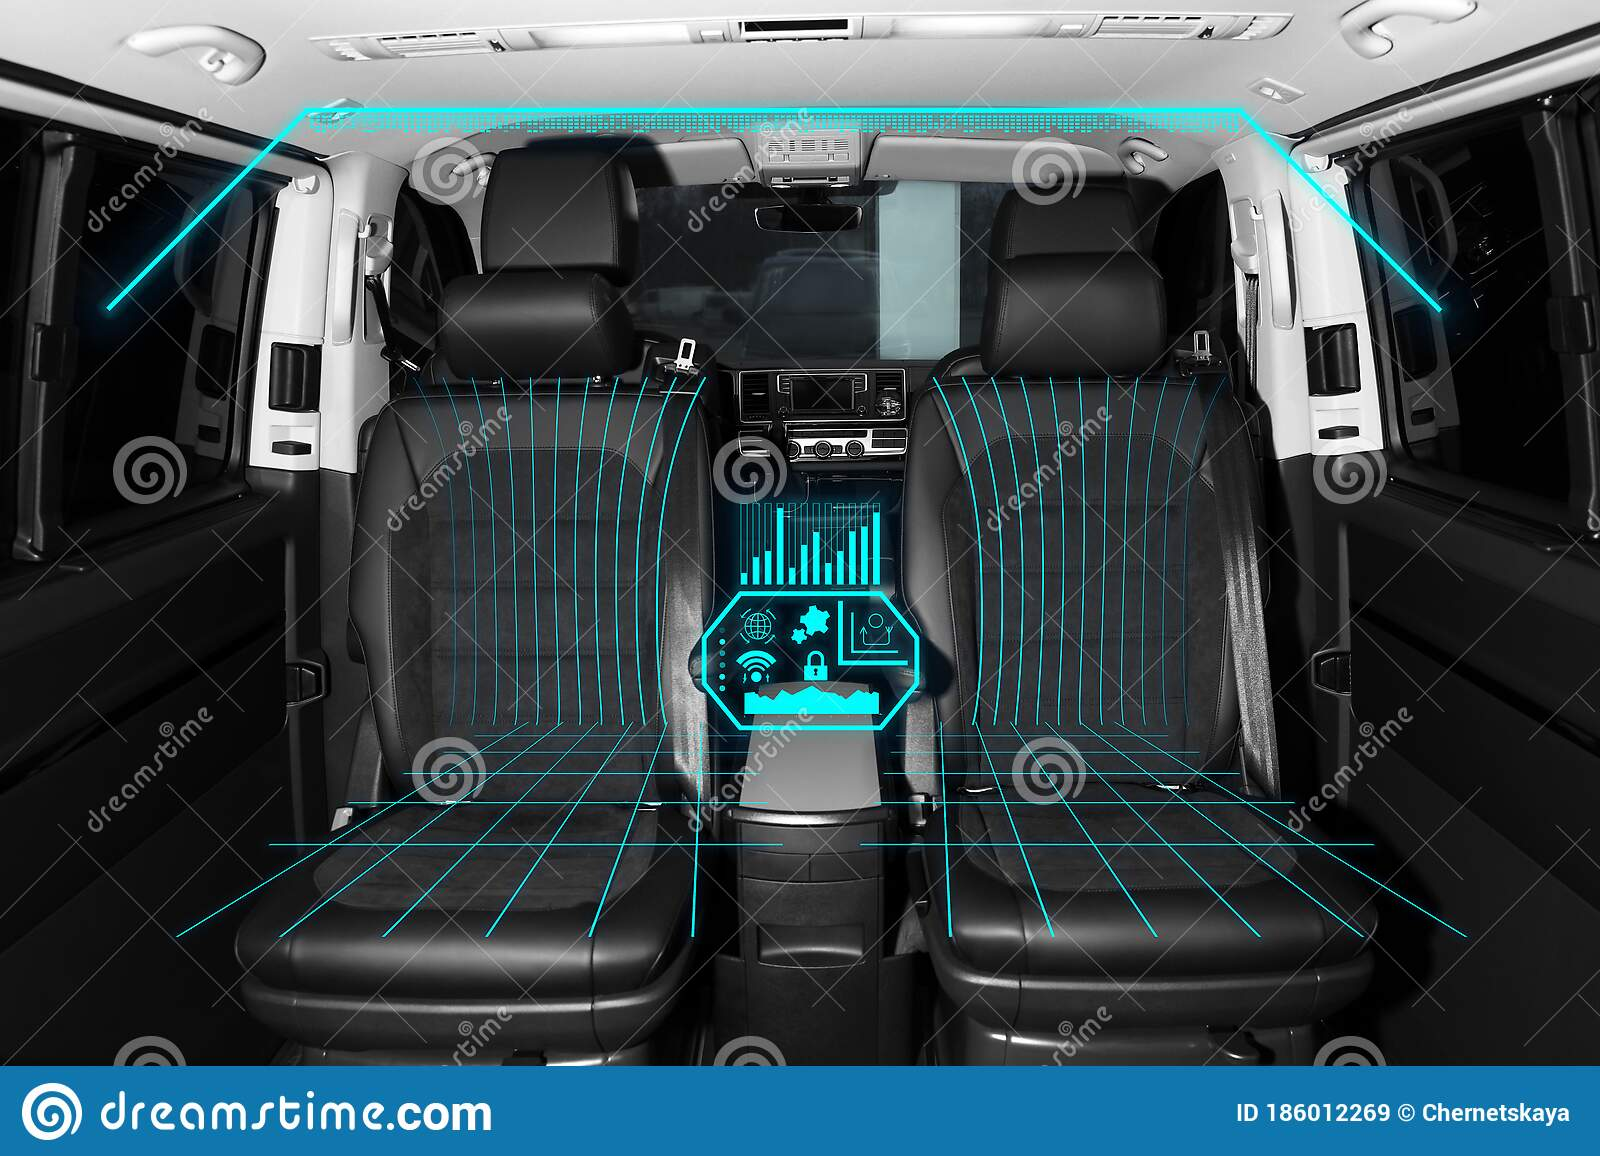 Futuristic Car Interior With Graphical User Interface Stock Image Image Of Computer Comfortable 186012269